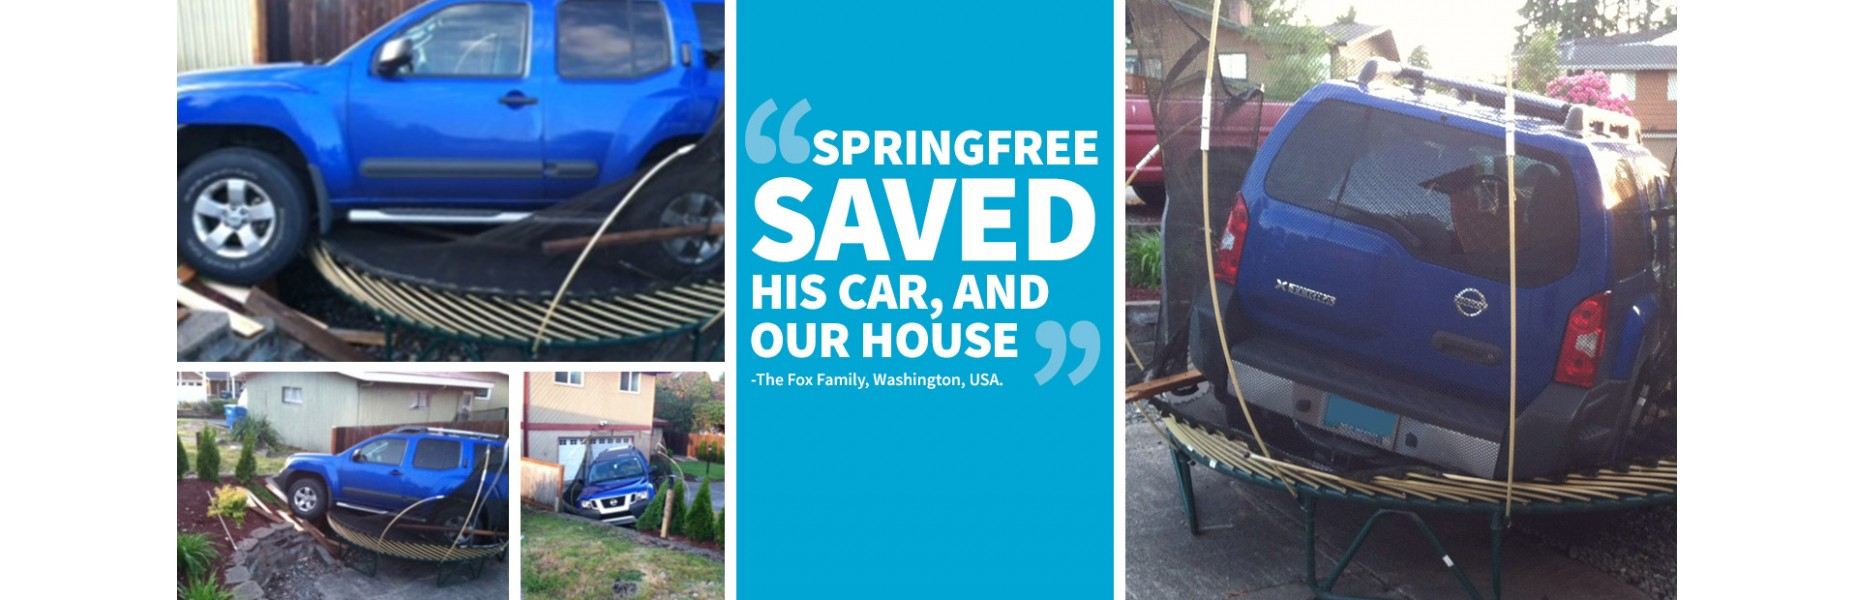 Spring Free Saved Car